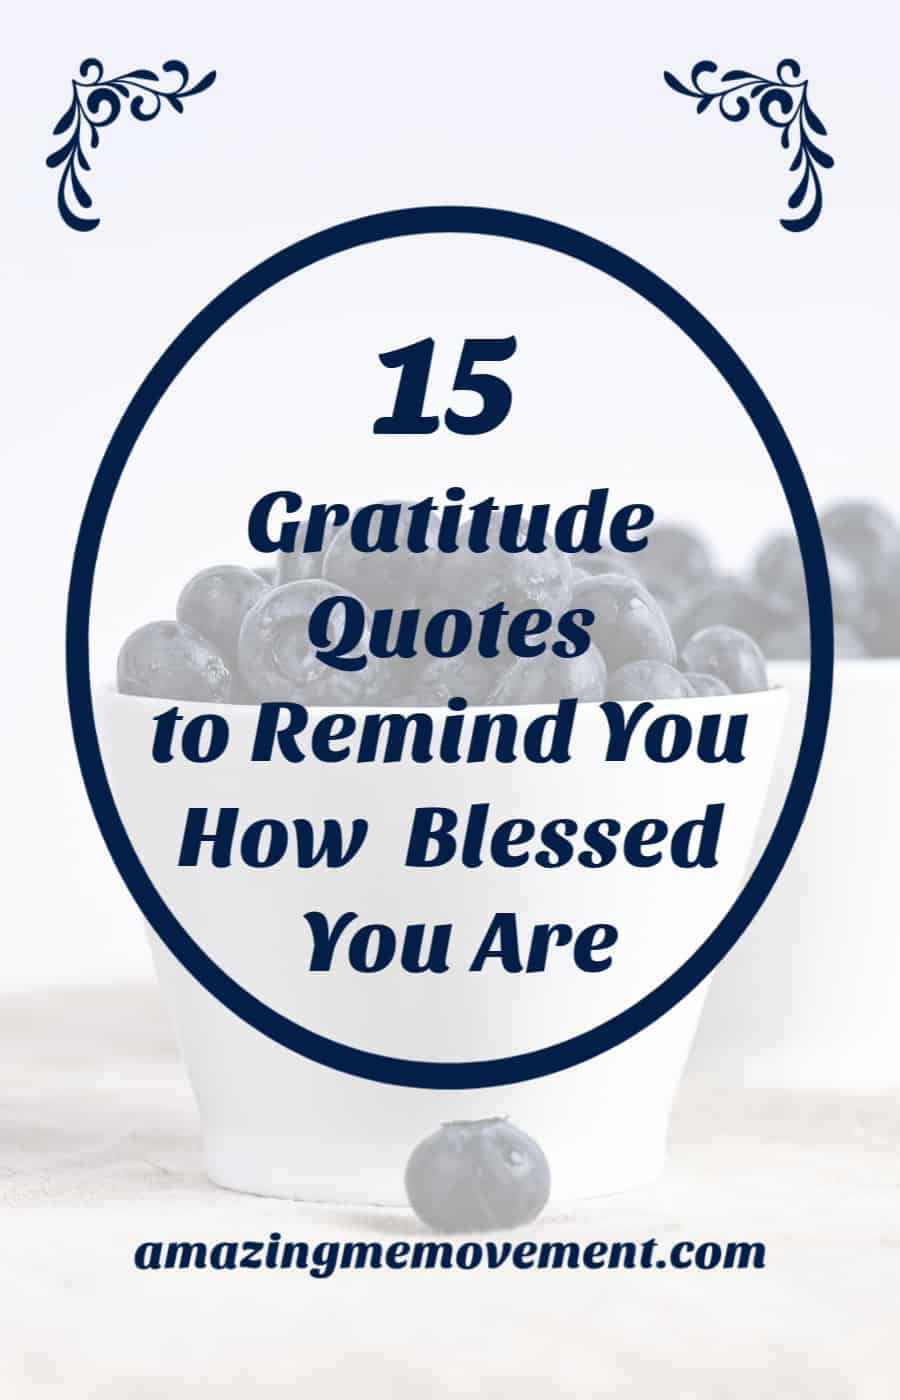 15 gratitude quotes to remind you how blessed you are